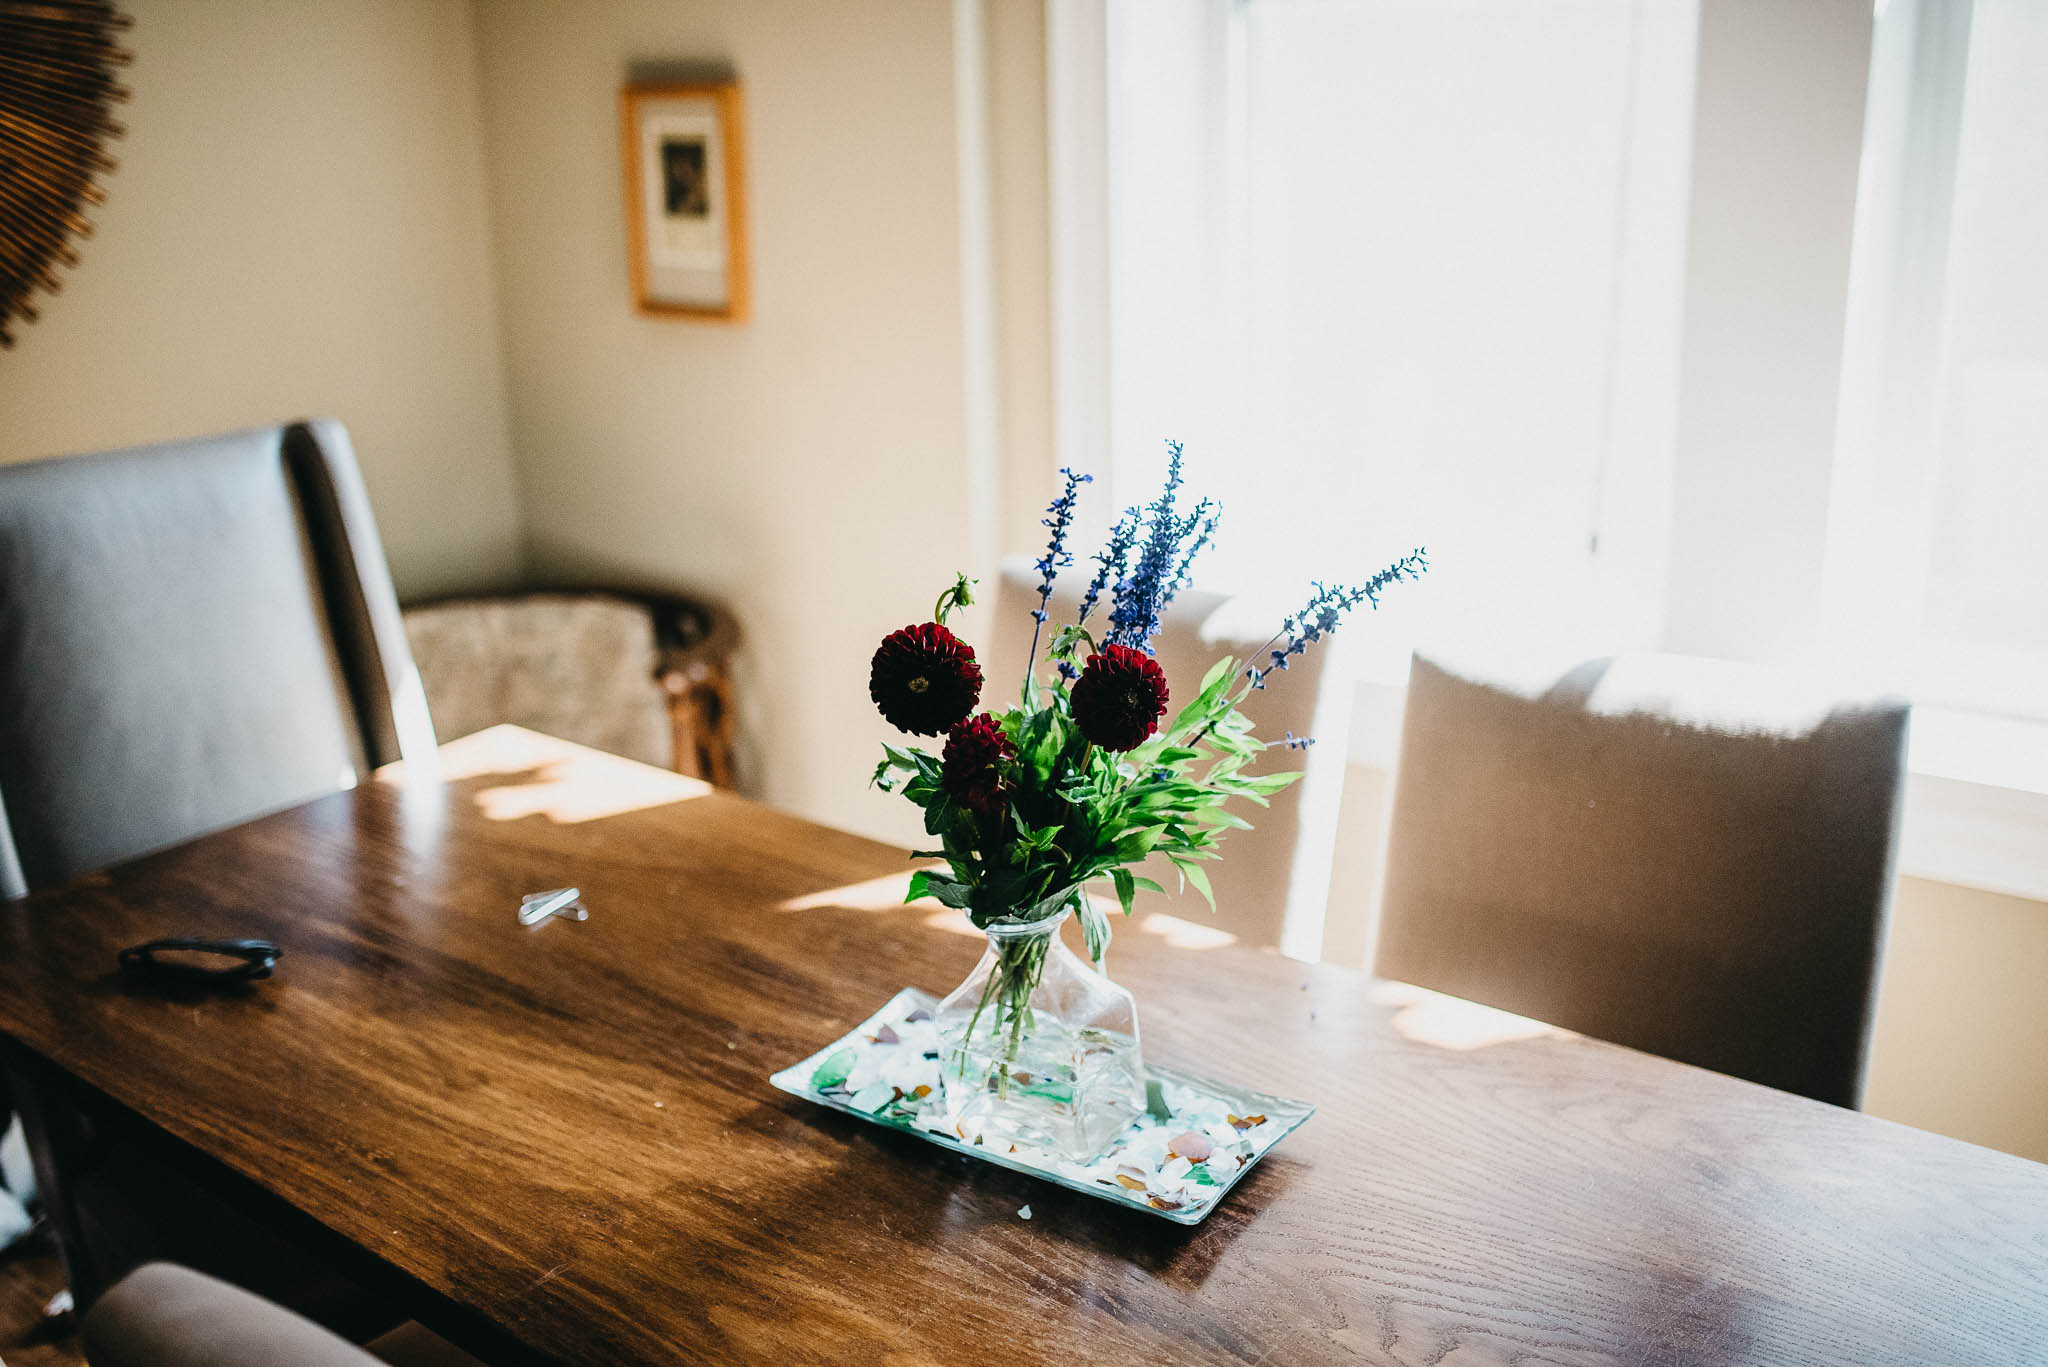 Arranged flowers on dining room table